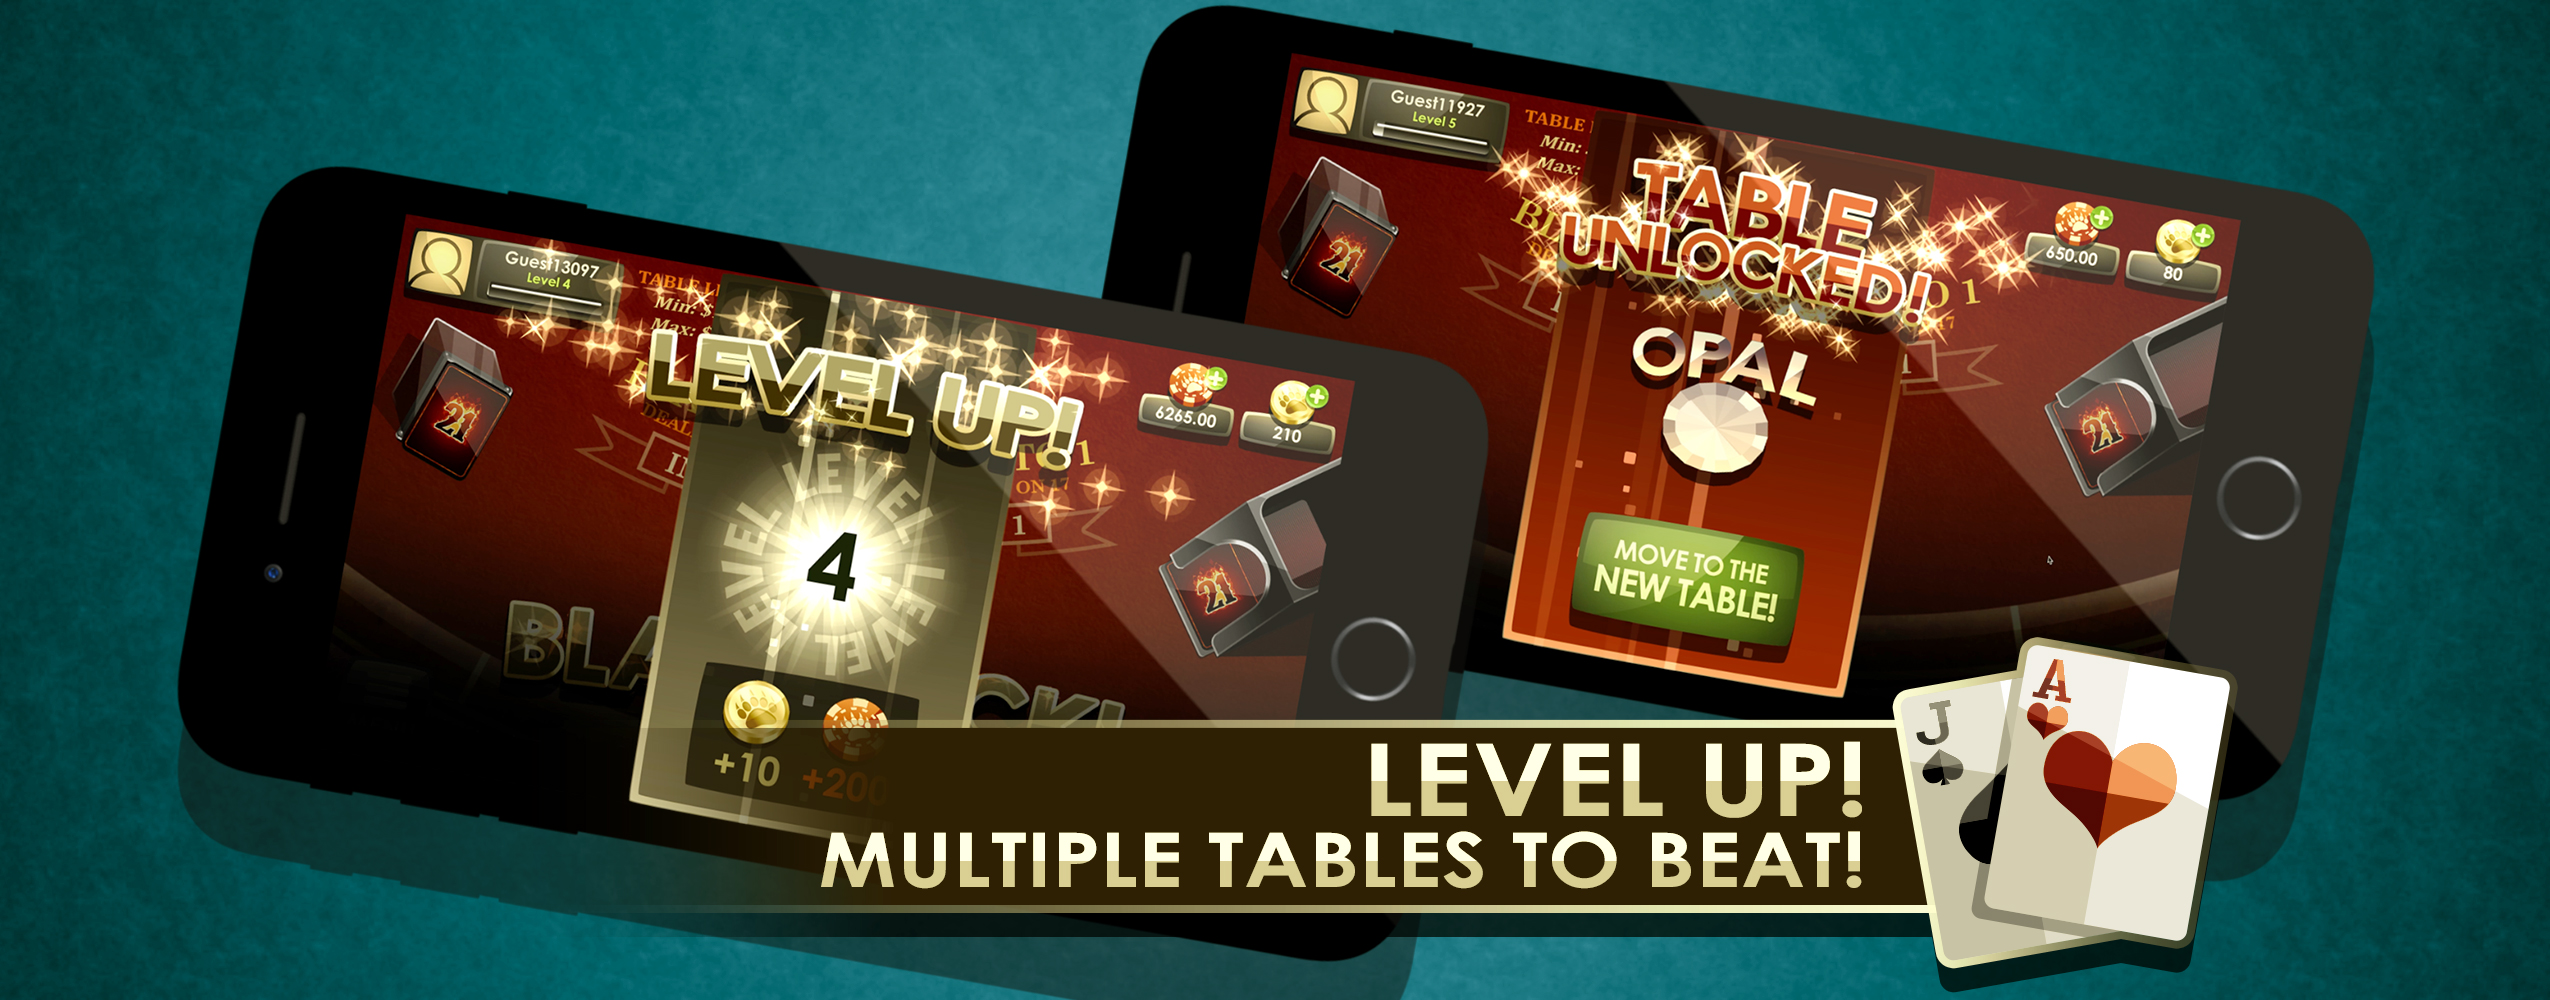 Level Up! Multiple table to beat!